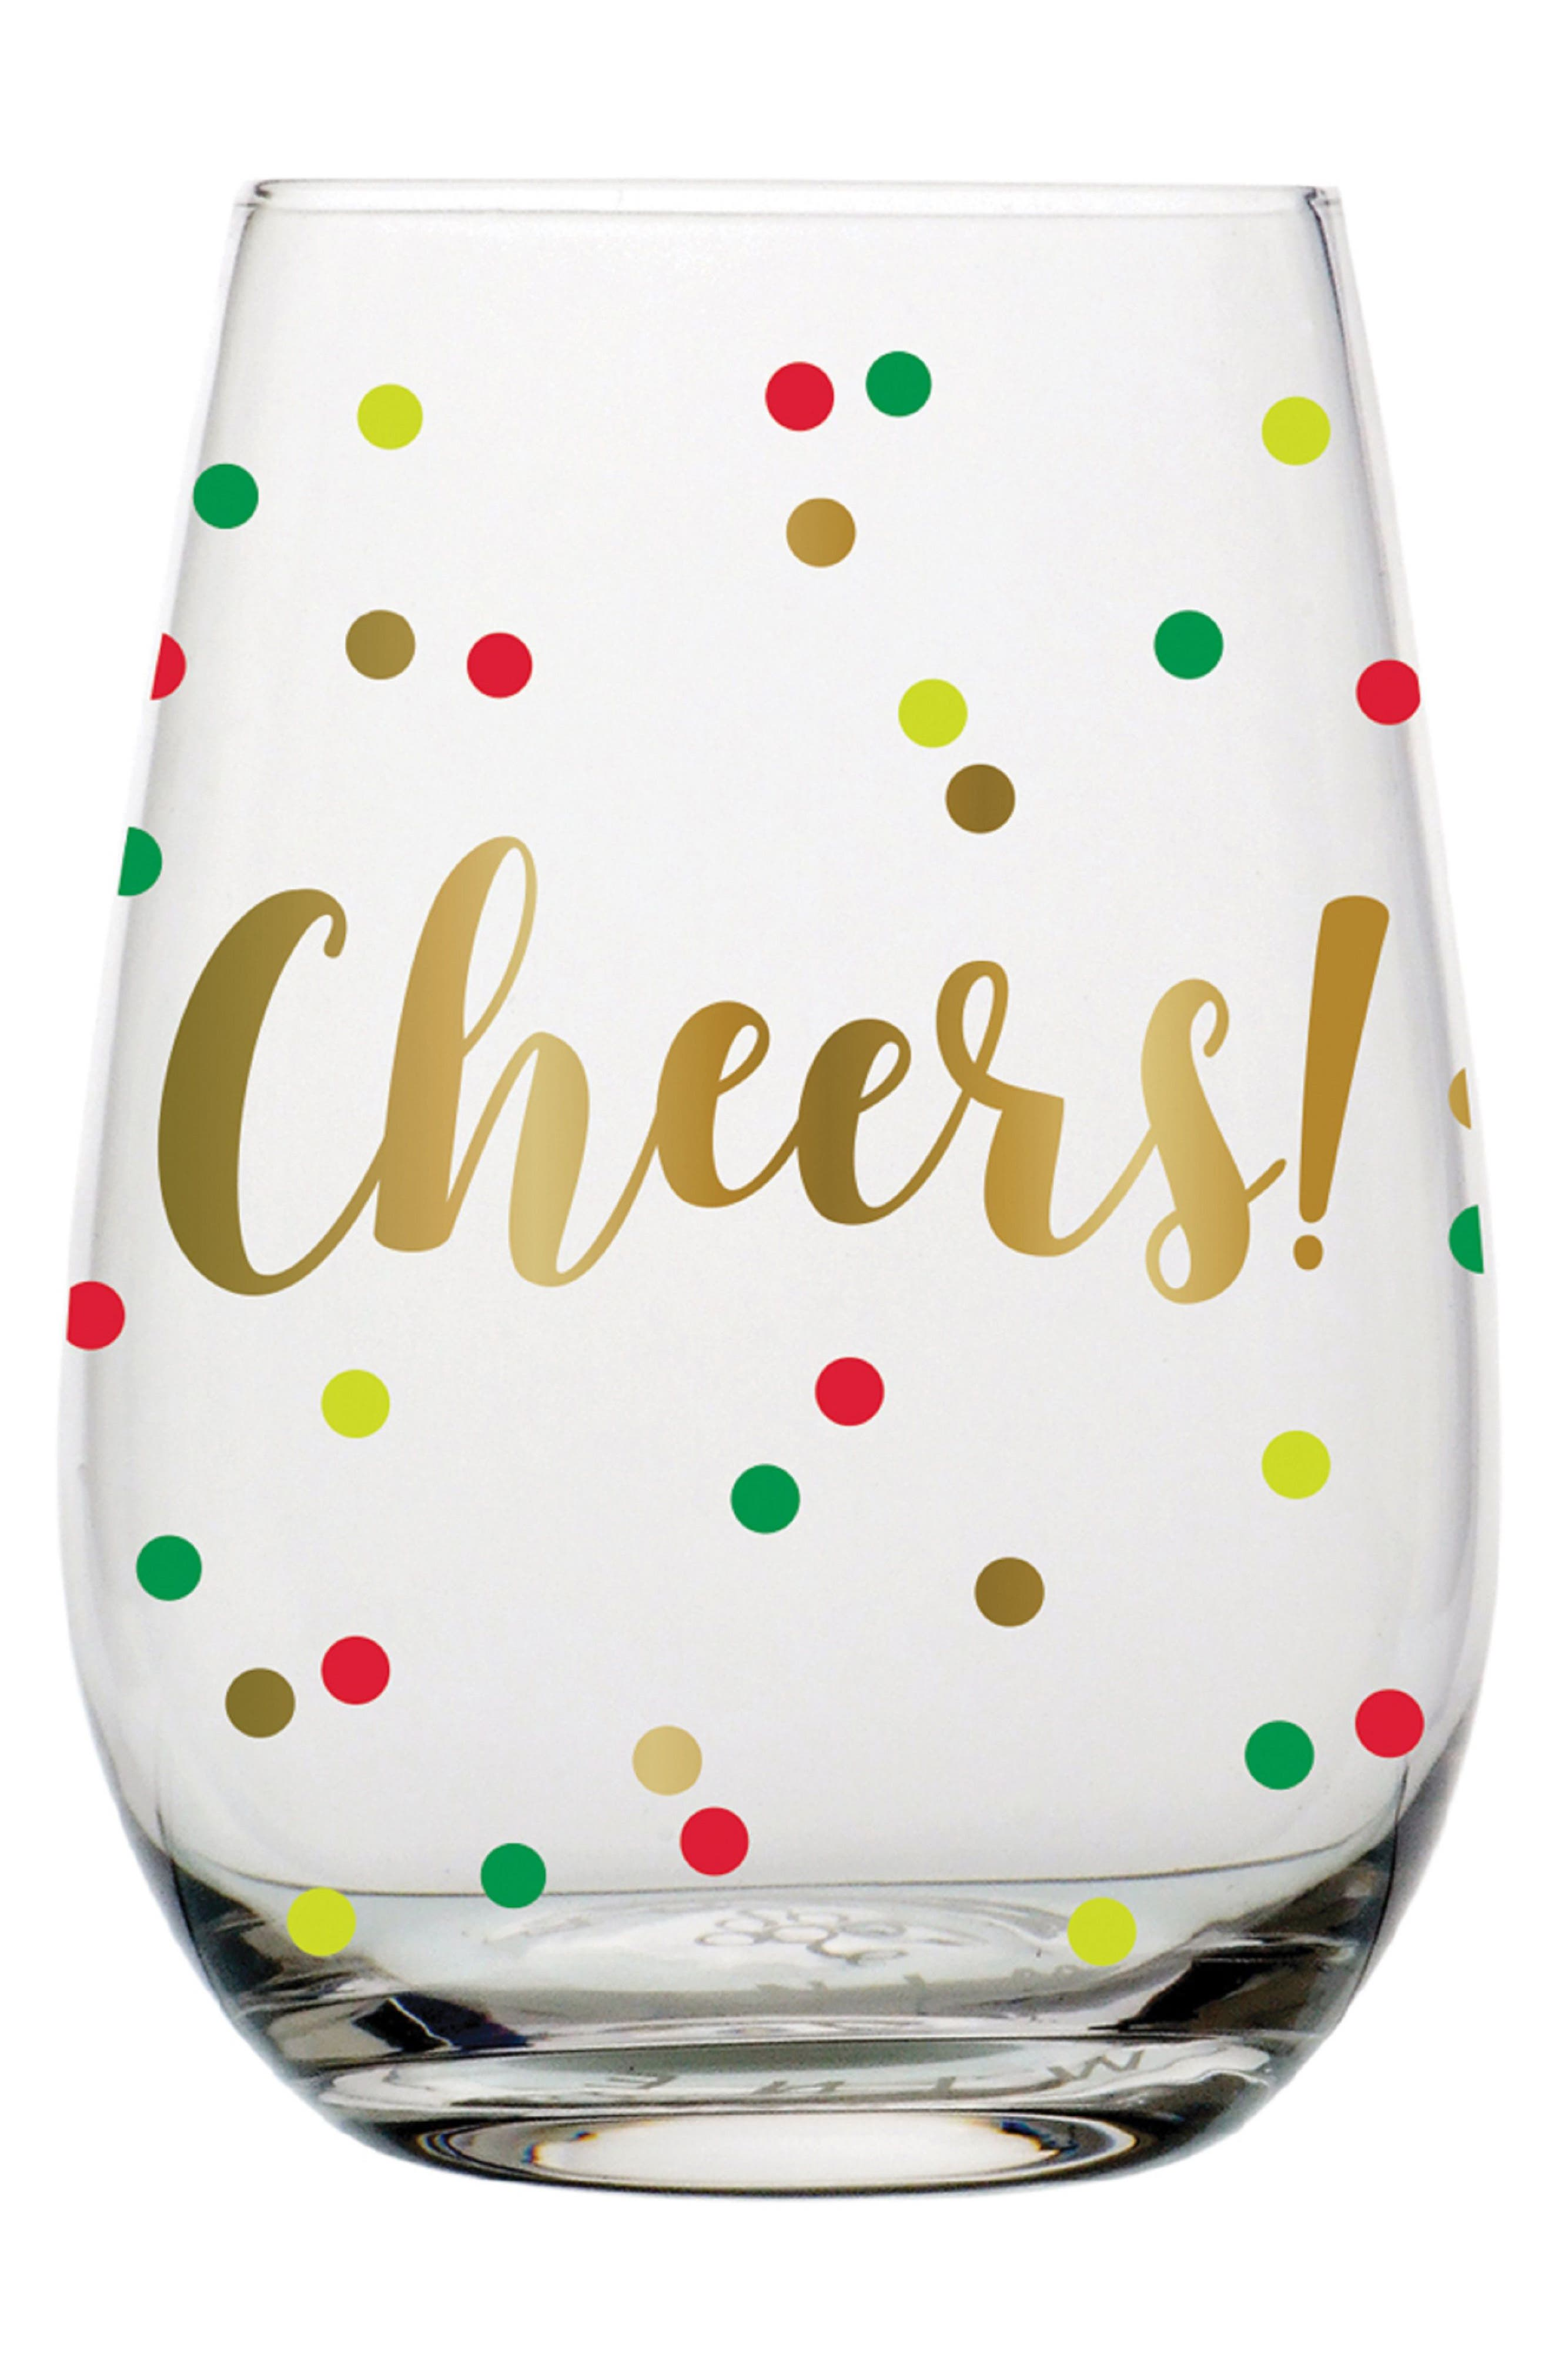 Cheers Confetti Stemless Wine Glass,                             Main thumbnail 1, color,                             710